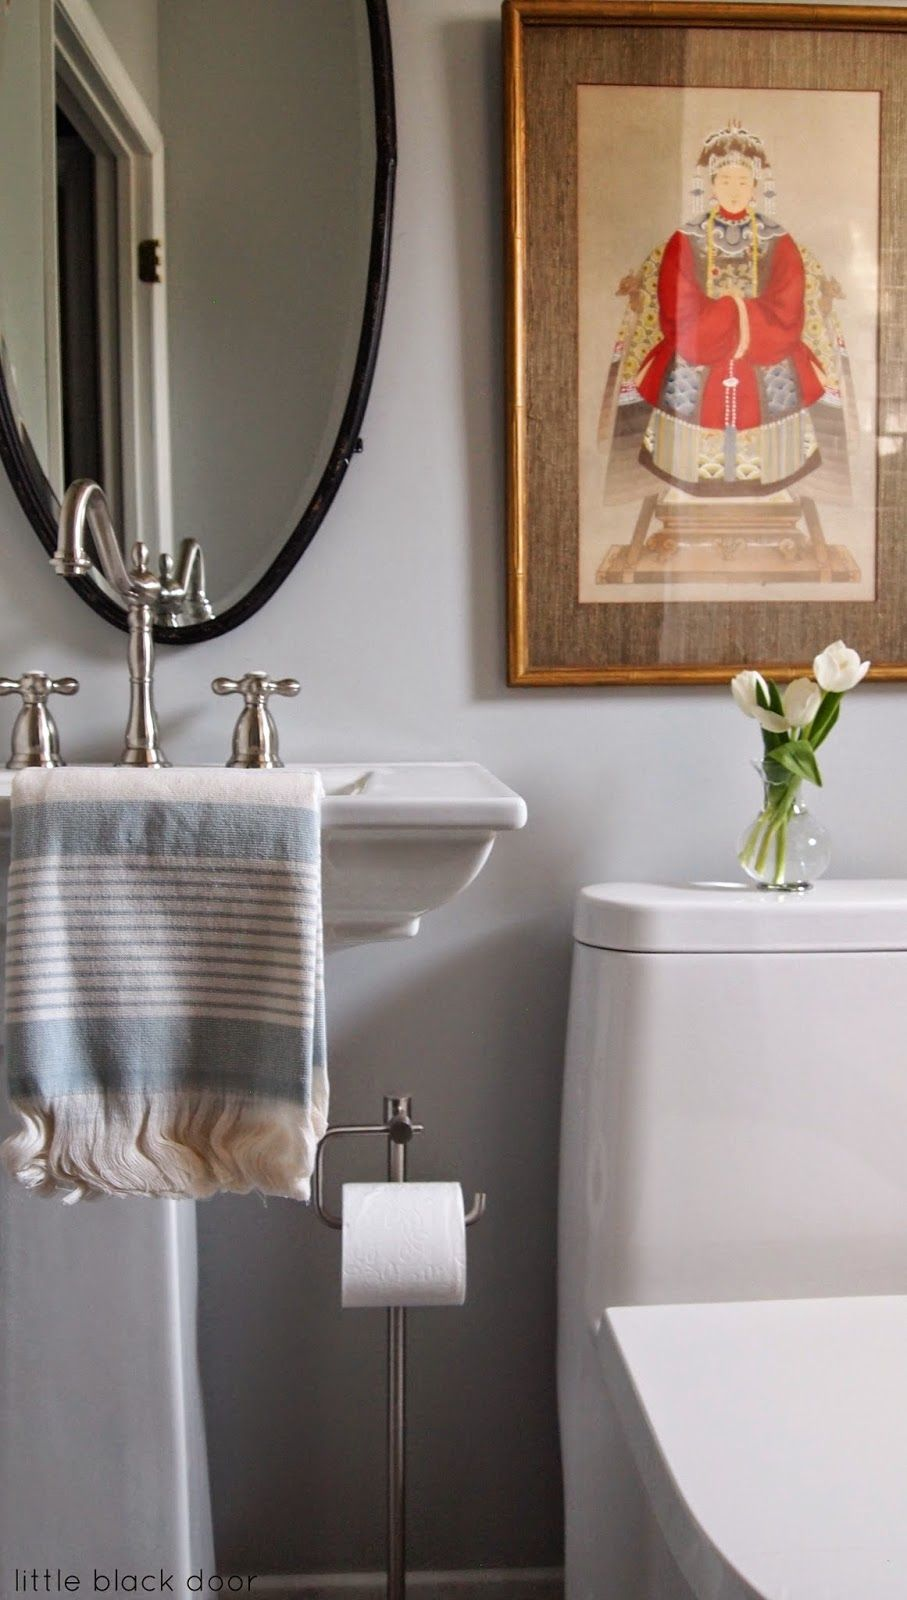 passive by sherwin williams - Bathroom design by Little ...